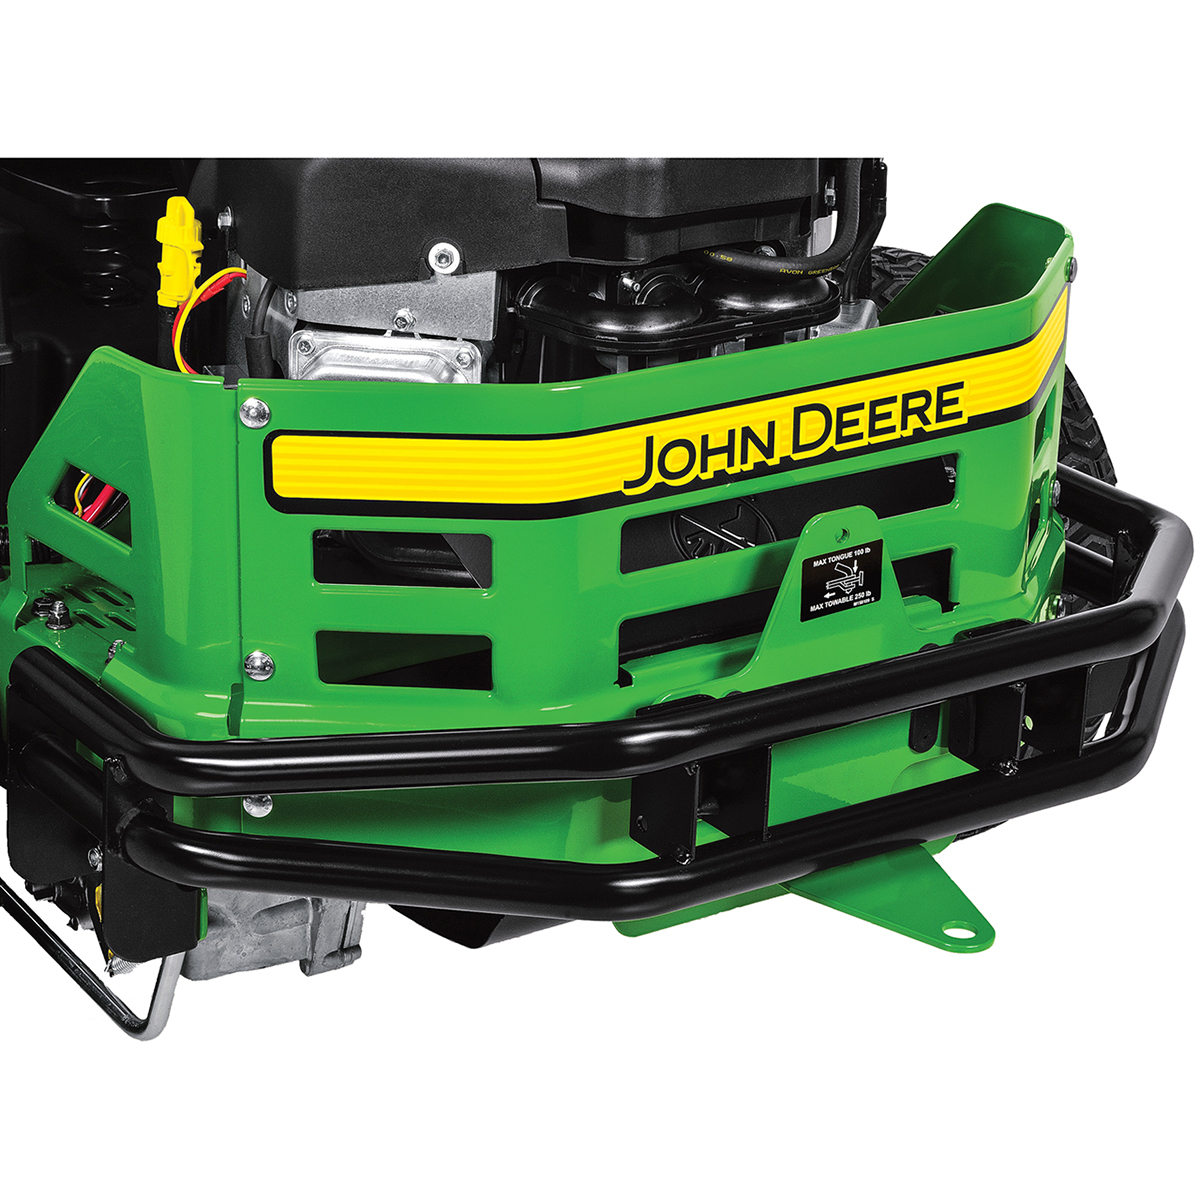 Attachment Bar and Hitch Kit For ZTrak Zero-Turn Mowers